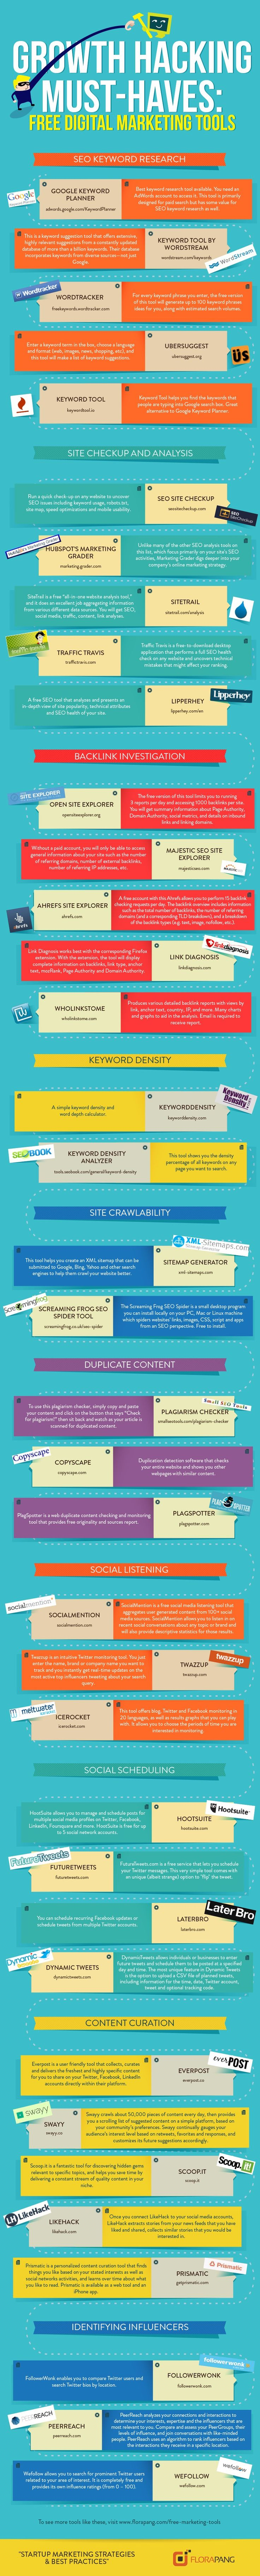 Digital-Marketing-Growth-Hacking-Must-Haves-Free-Digital-Marketing-Tools-infographic Digital Marketing : Growth Hacking Must-Haves: Free Digital Marketing Tools - #infographic